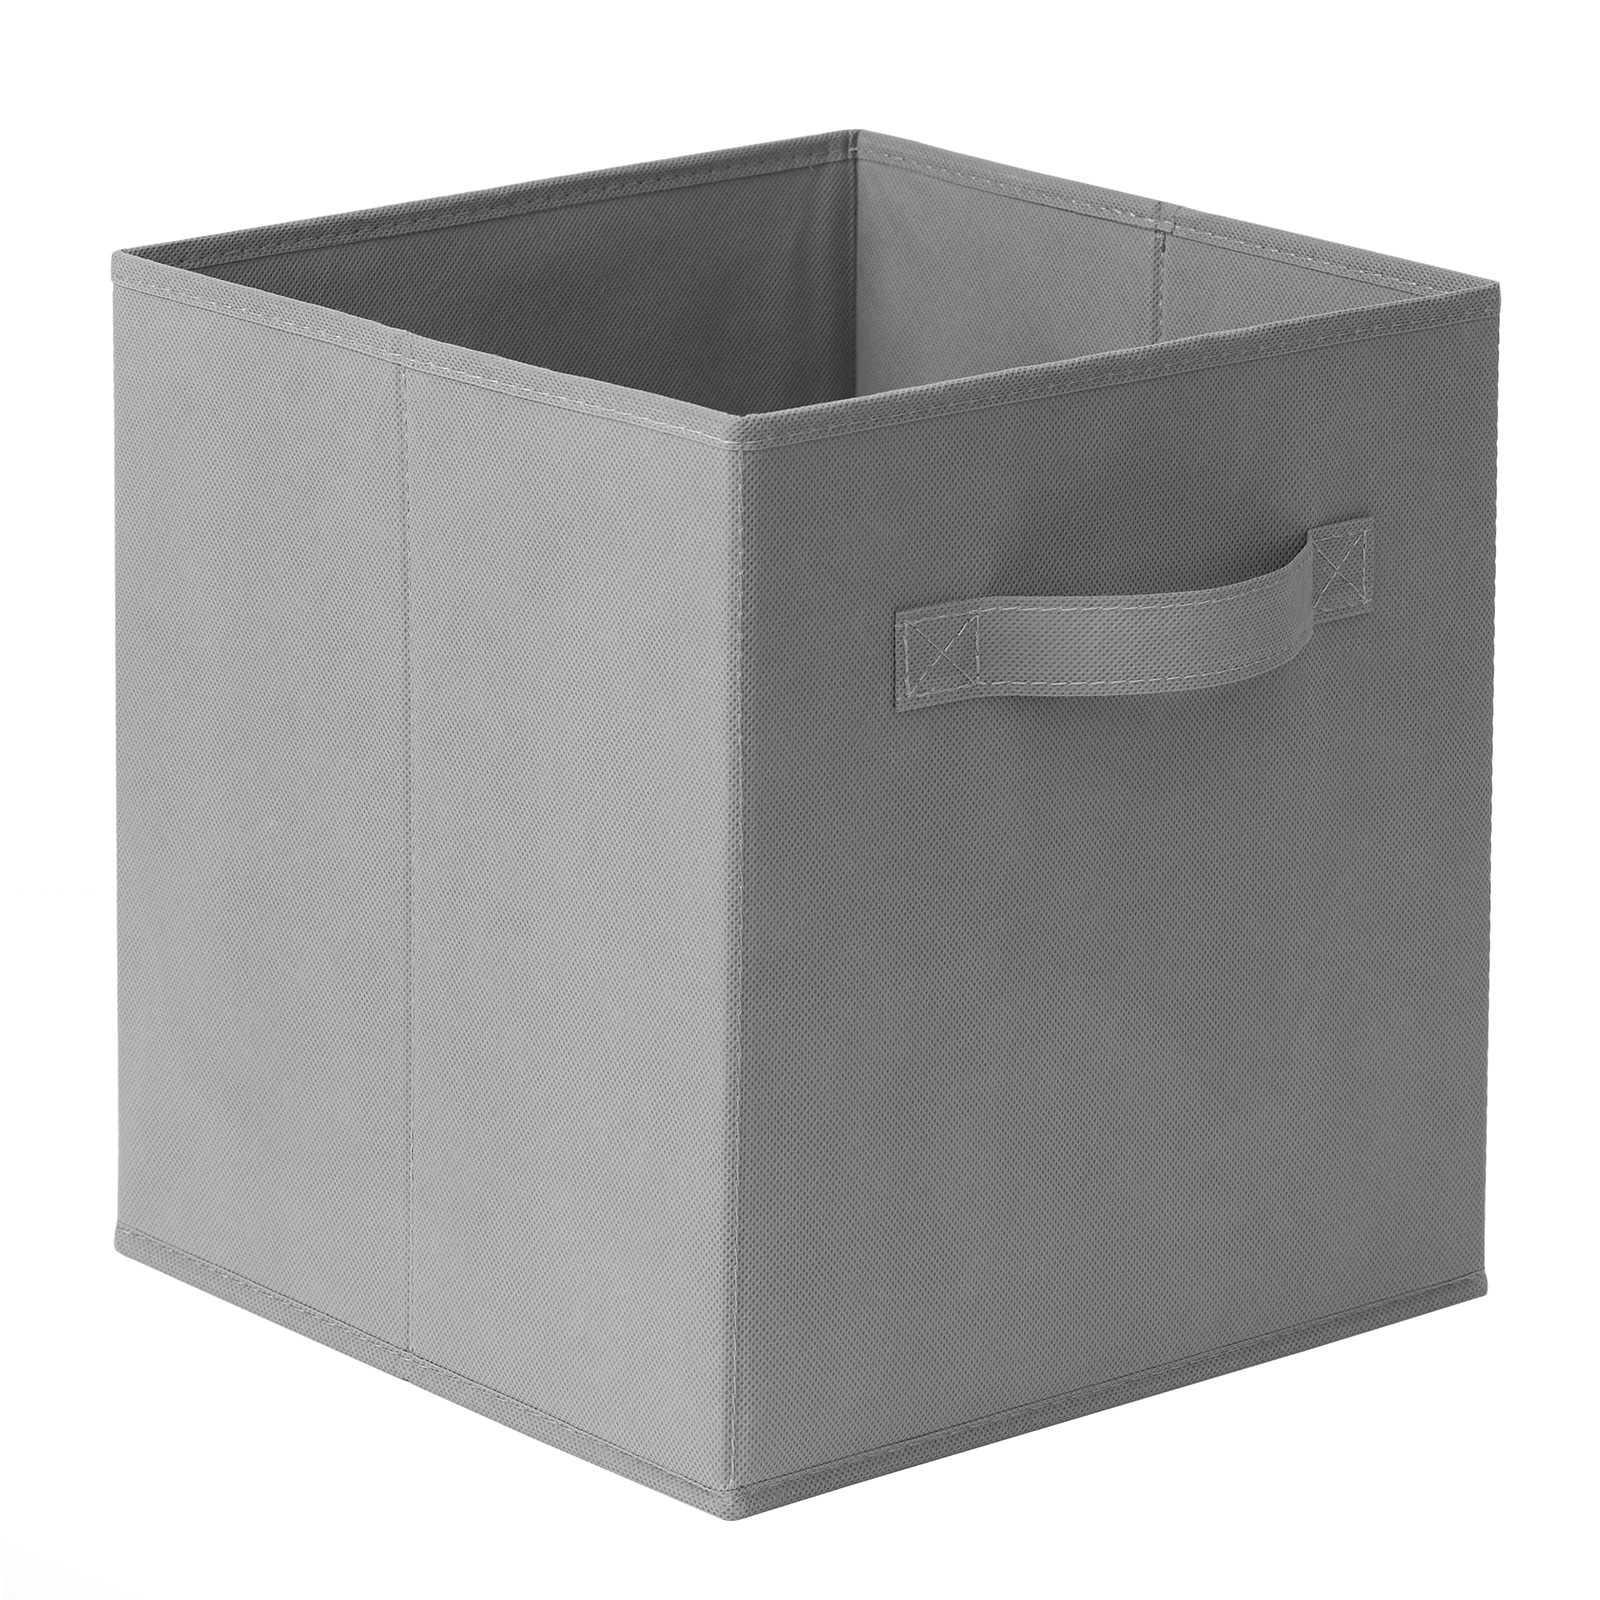 6-Collapsible-Foldable-Cloth-Fabric-Cubby-Cube-Storage-Bins-Baskets-for-Shelves thumbnail 26